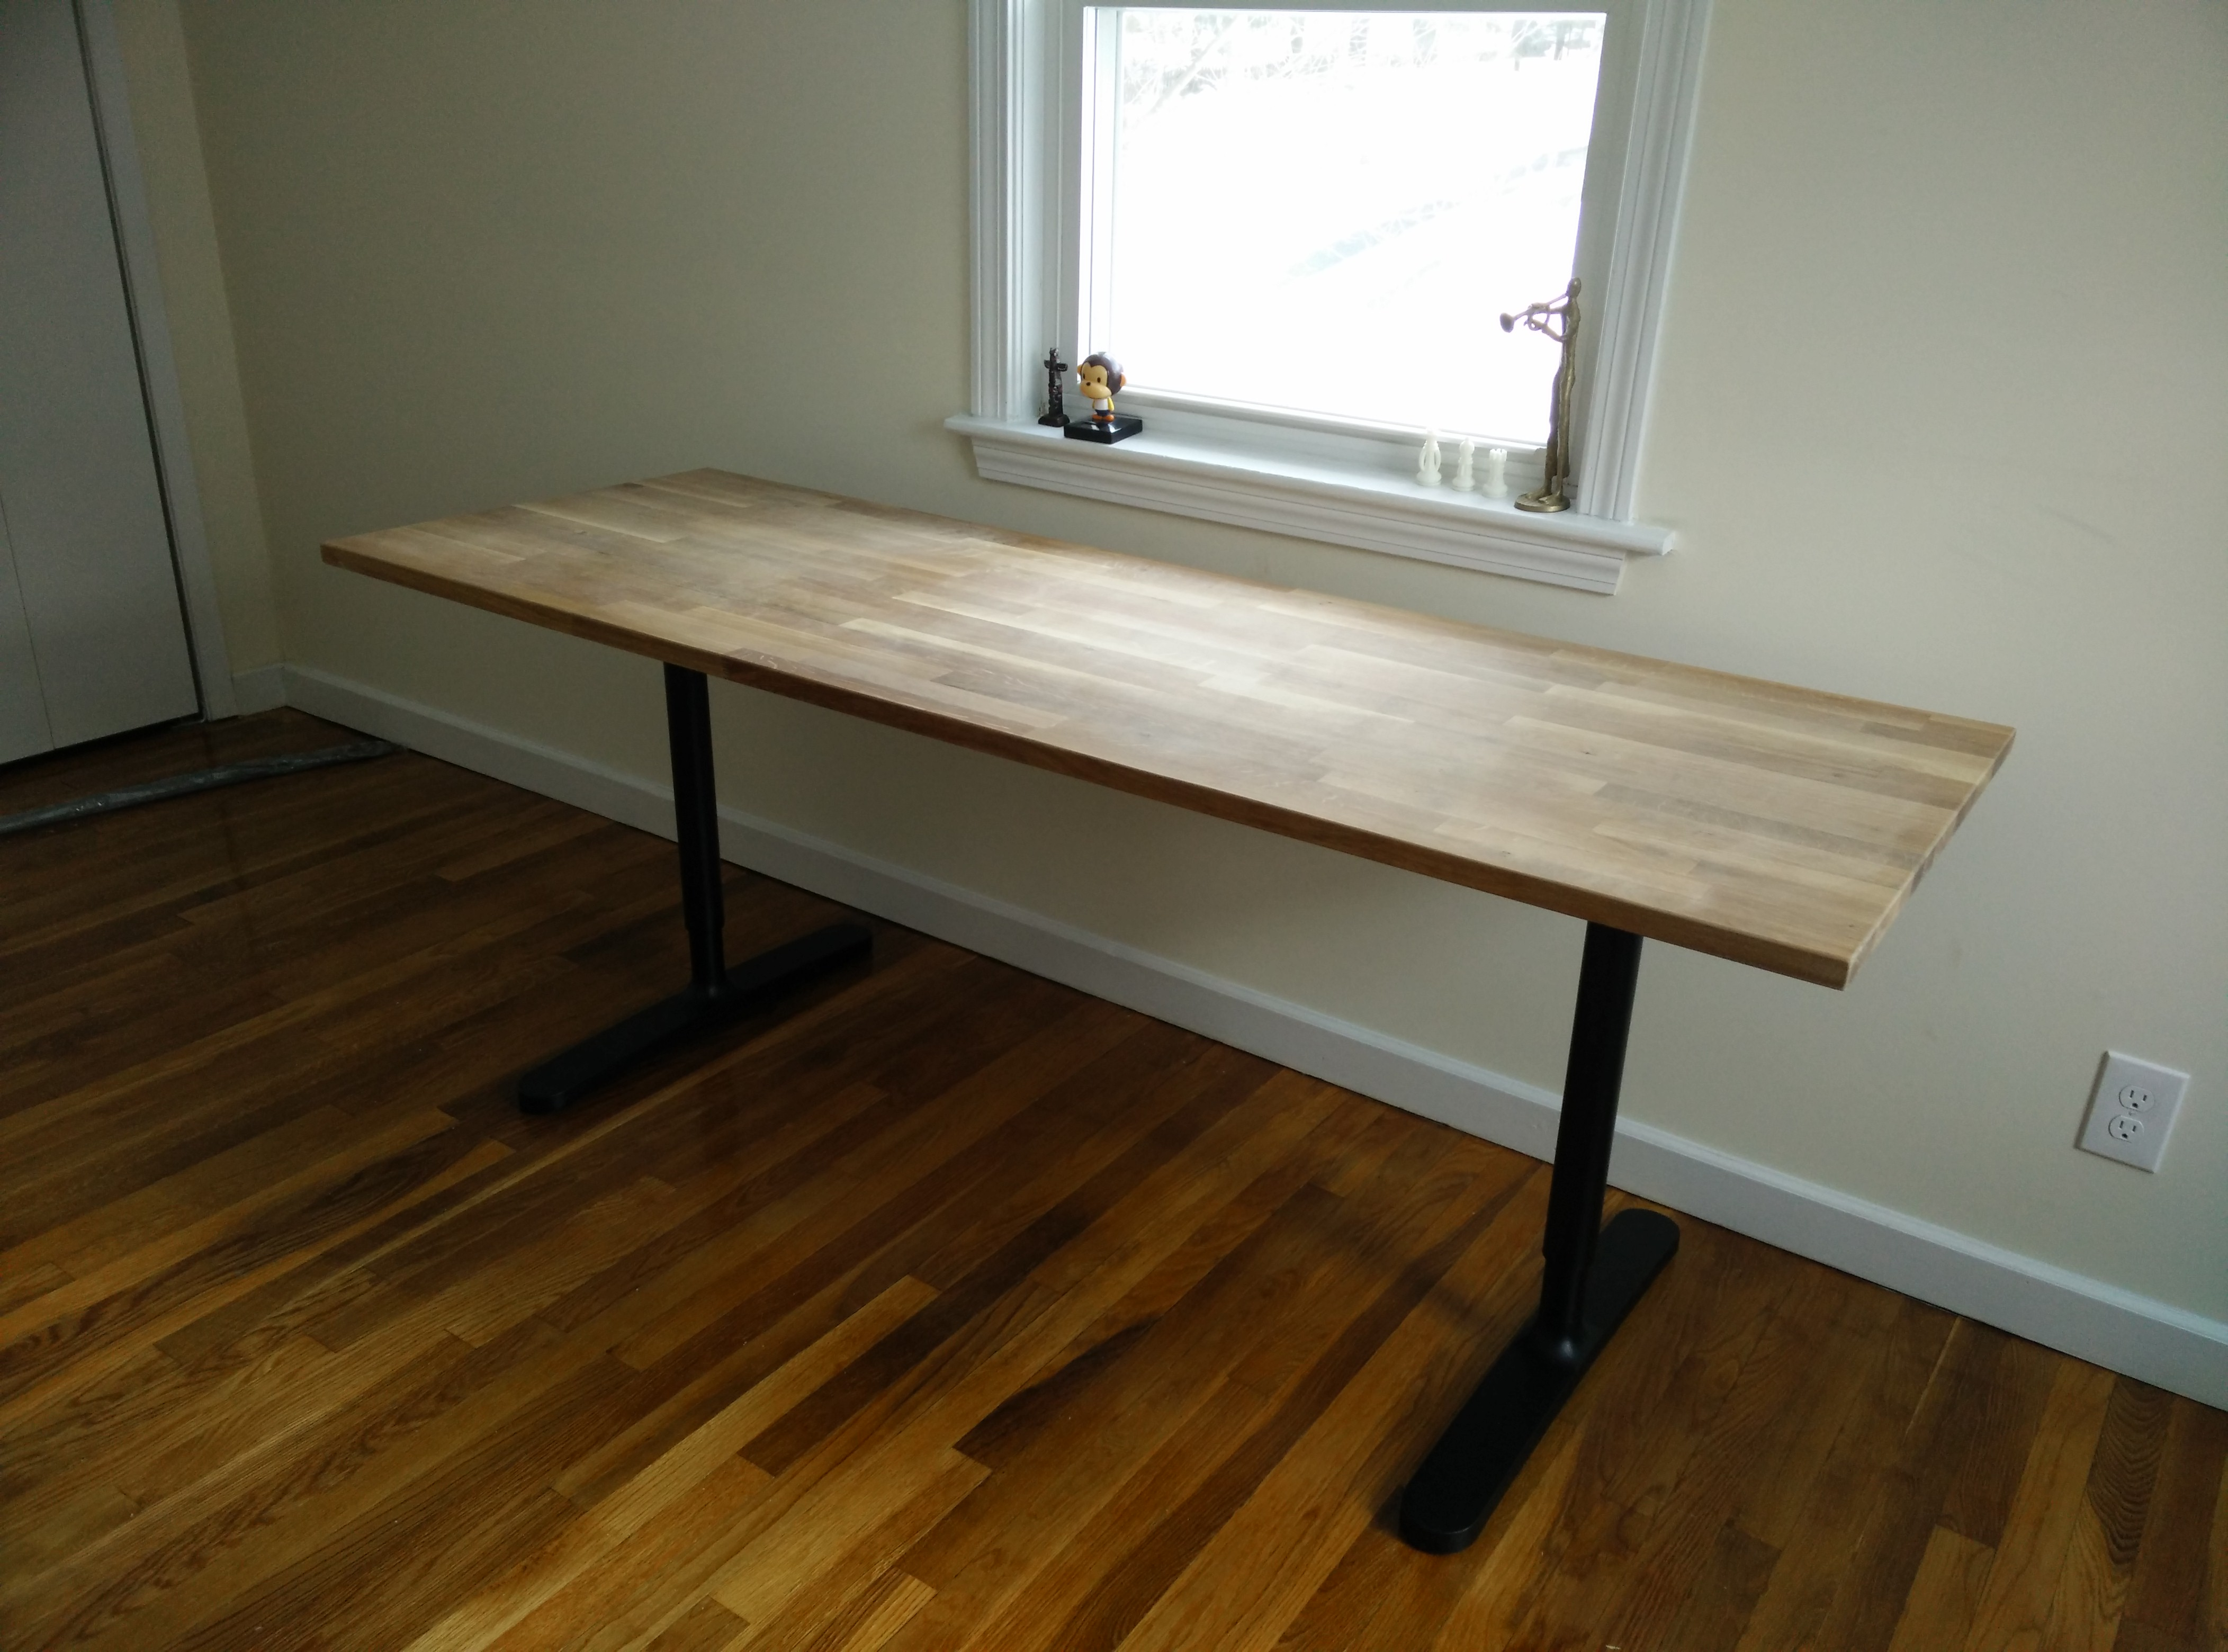 Picture of: Butcher Block Countertop Table Ikea Hack 4 Steps With Pictures Instructables